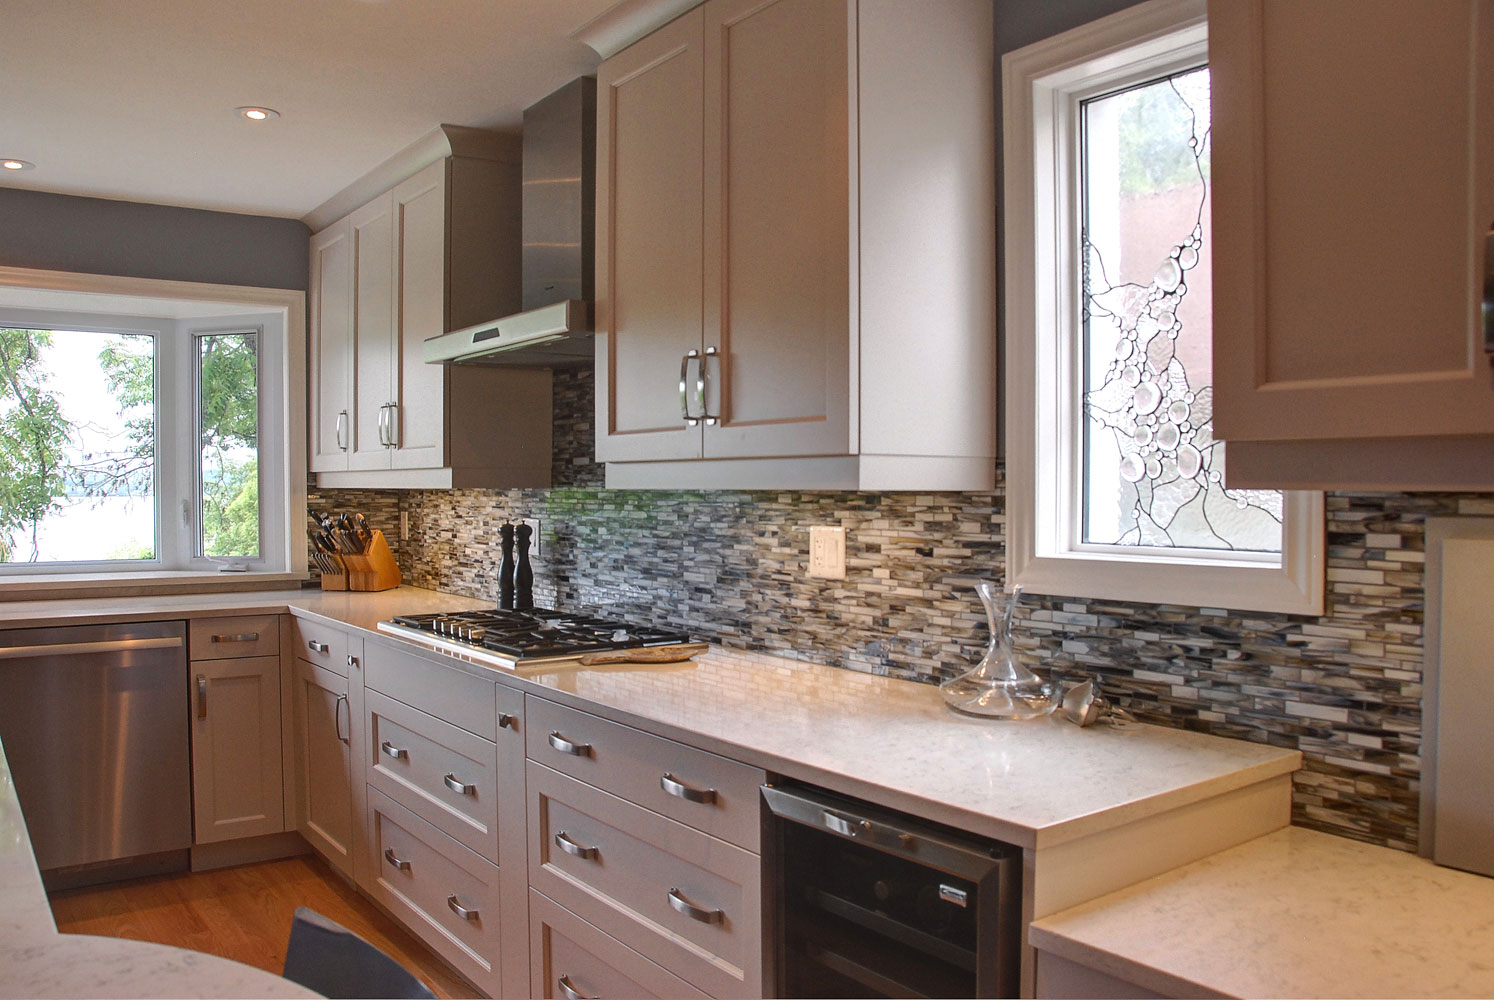 Cream kitchen cabinets with stainless steel appliances and accents - Total Living Concepts ontario